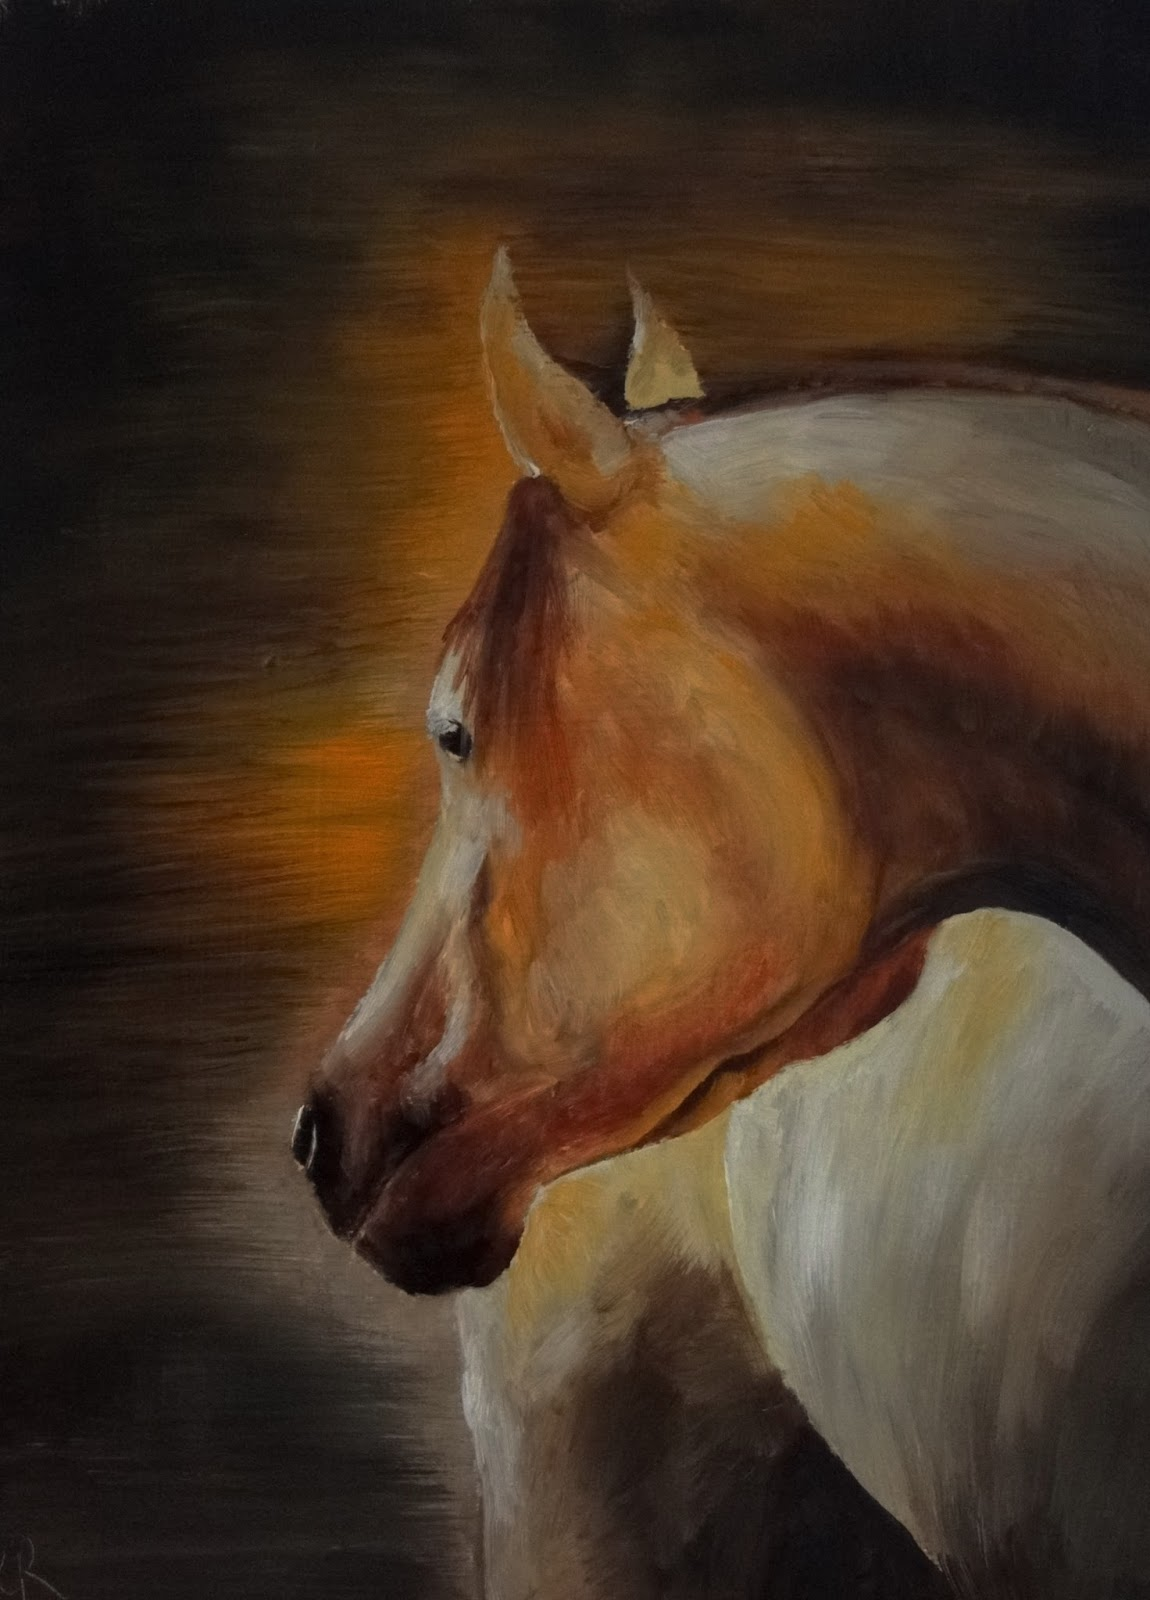 an oil painting, horse, looking behind, orange light